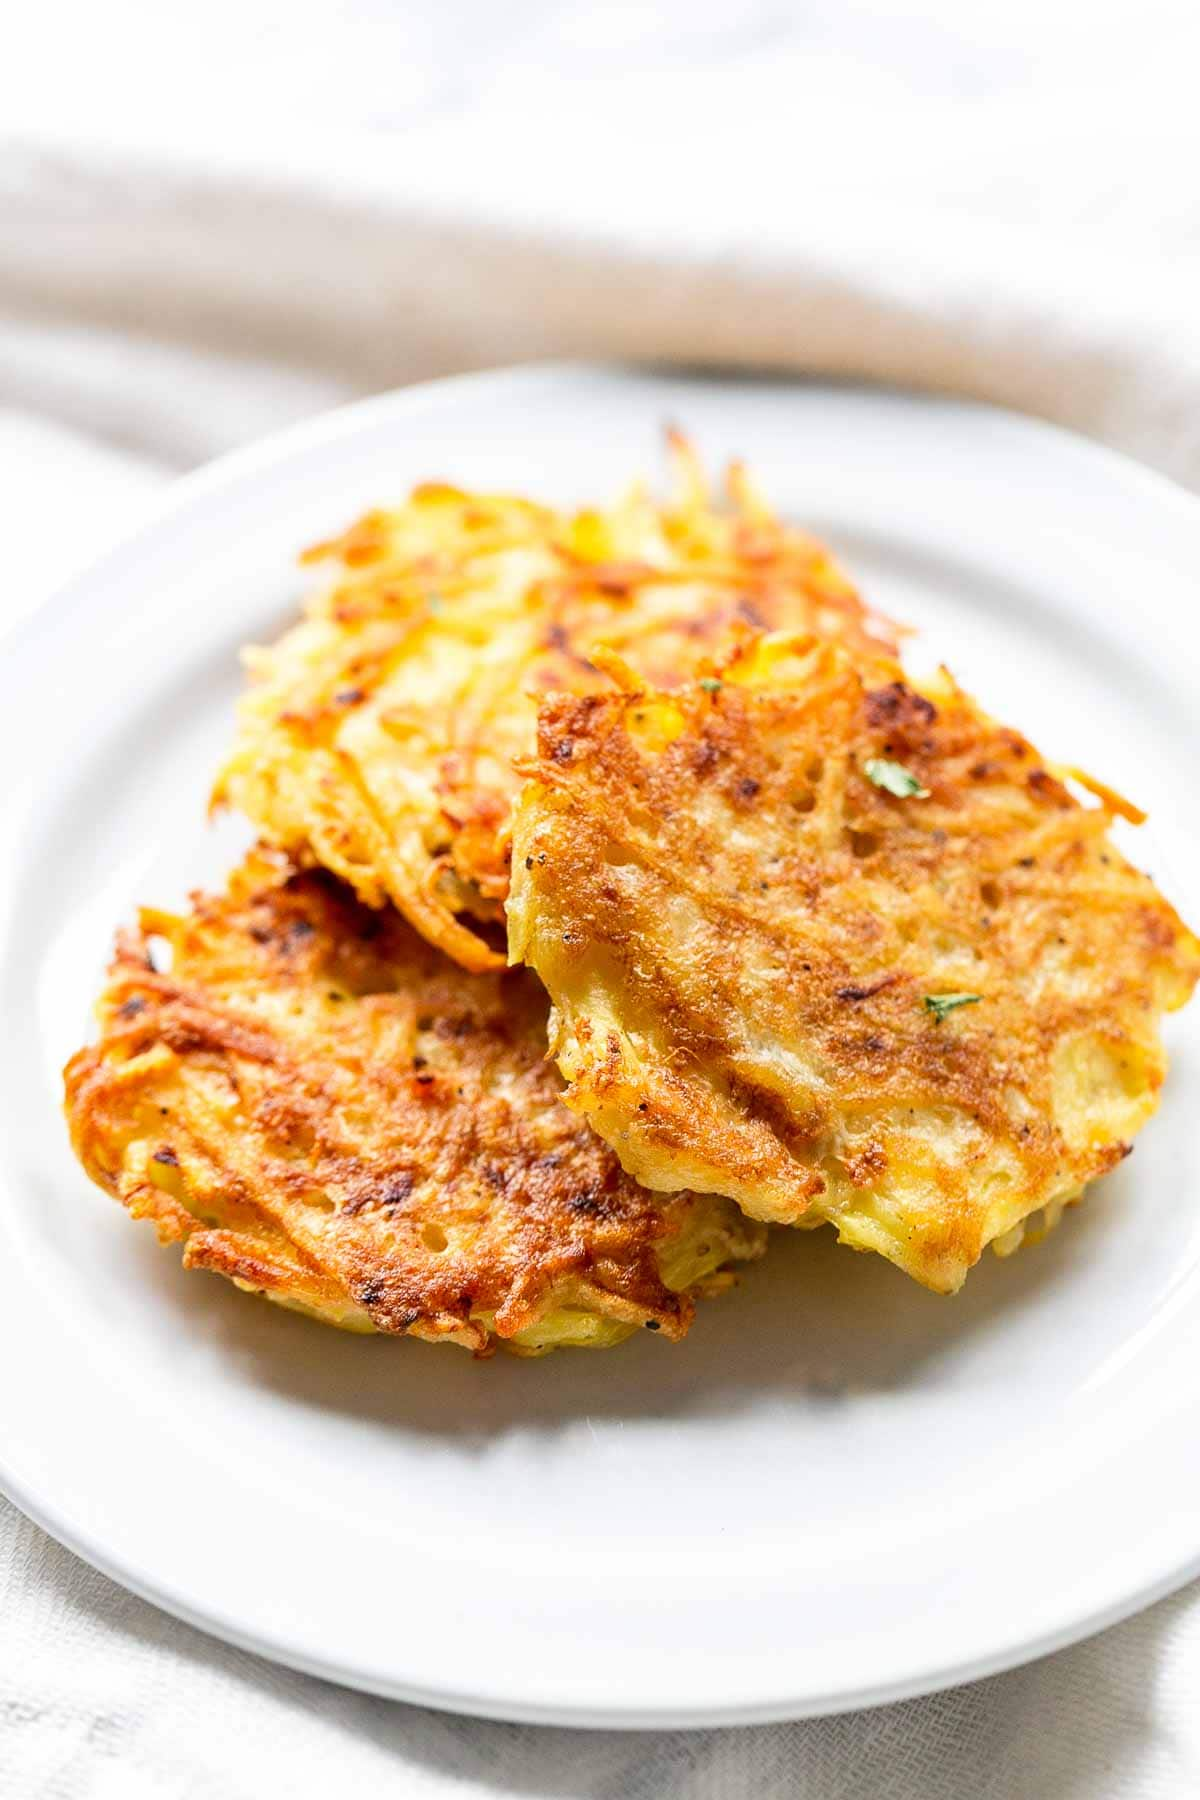 Looking for simple and quick hash browns? Take a look at this hashed browns recipe similar with rosti. Great to serve for breakfast or as a side dish. Visit fastfoodbistro.com for the full recipe #fastfoodbistro #hashbrowns #hashedbrowns #potatopatties #breakfast #sidedish